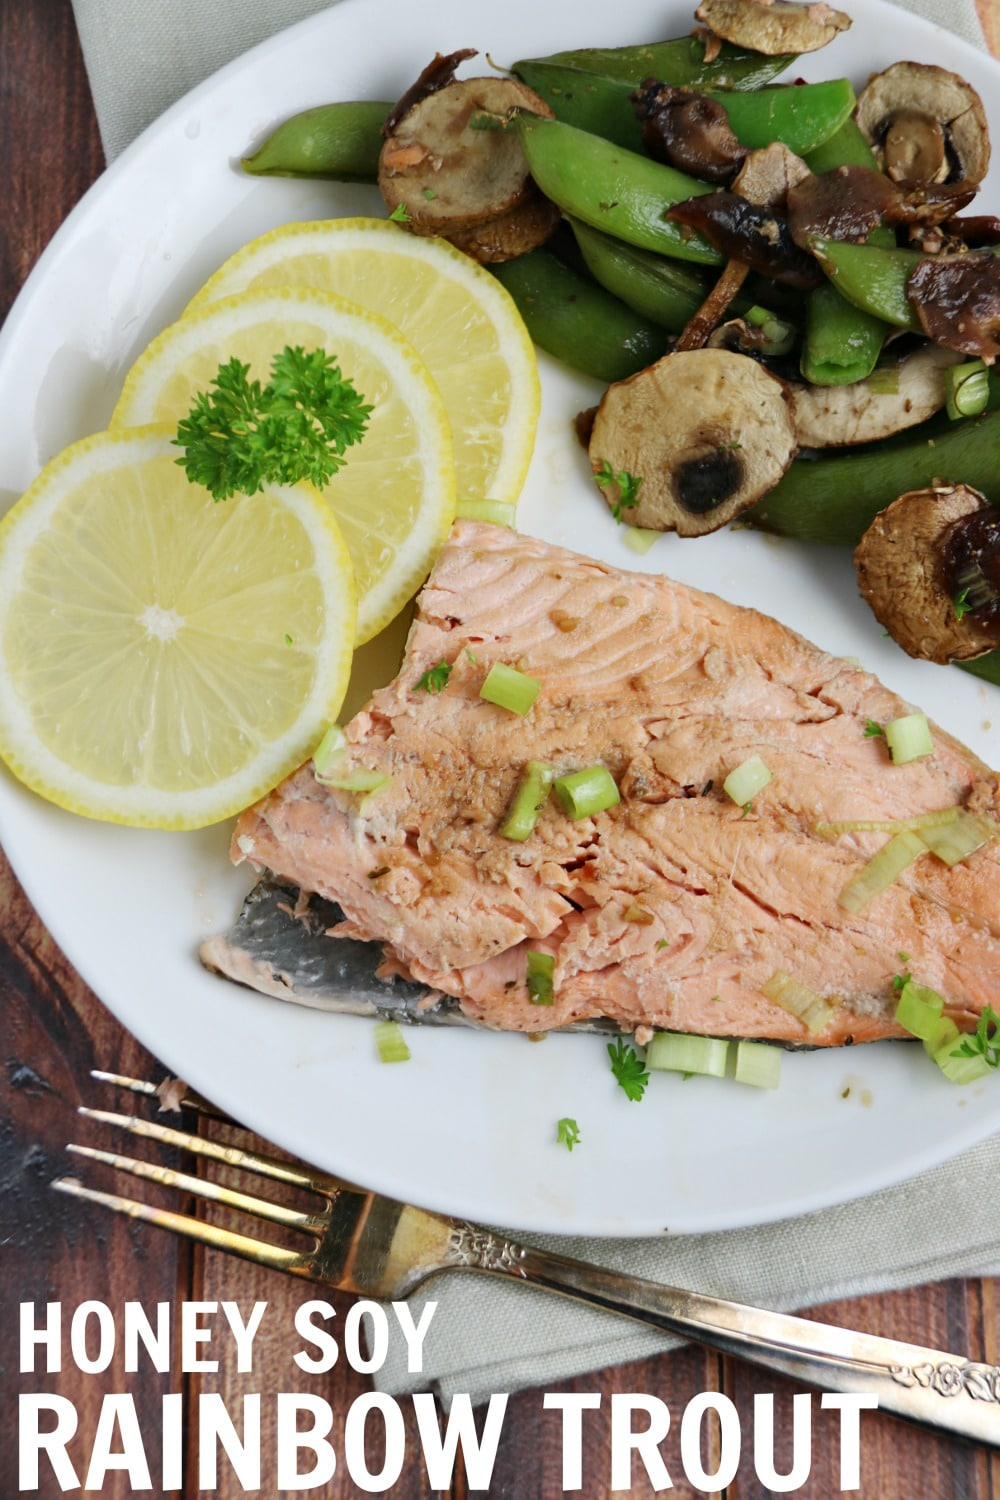 HONEY SOY rainbow trout